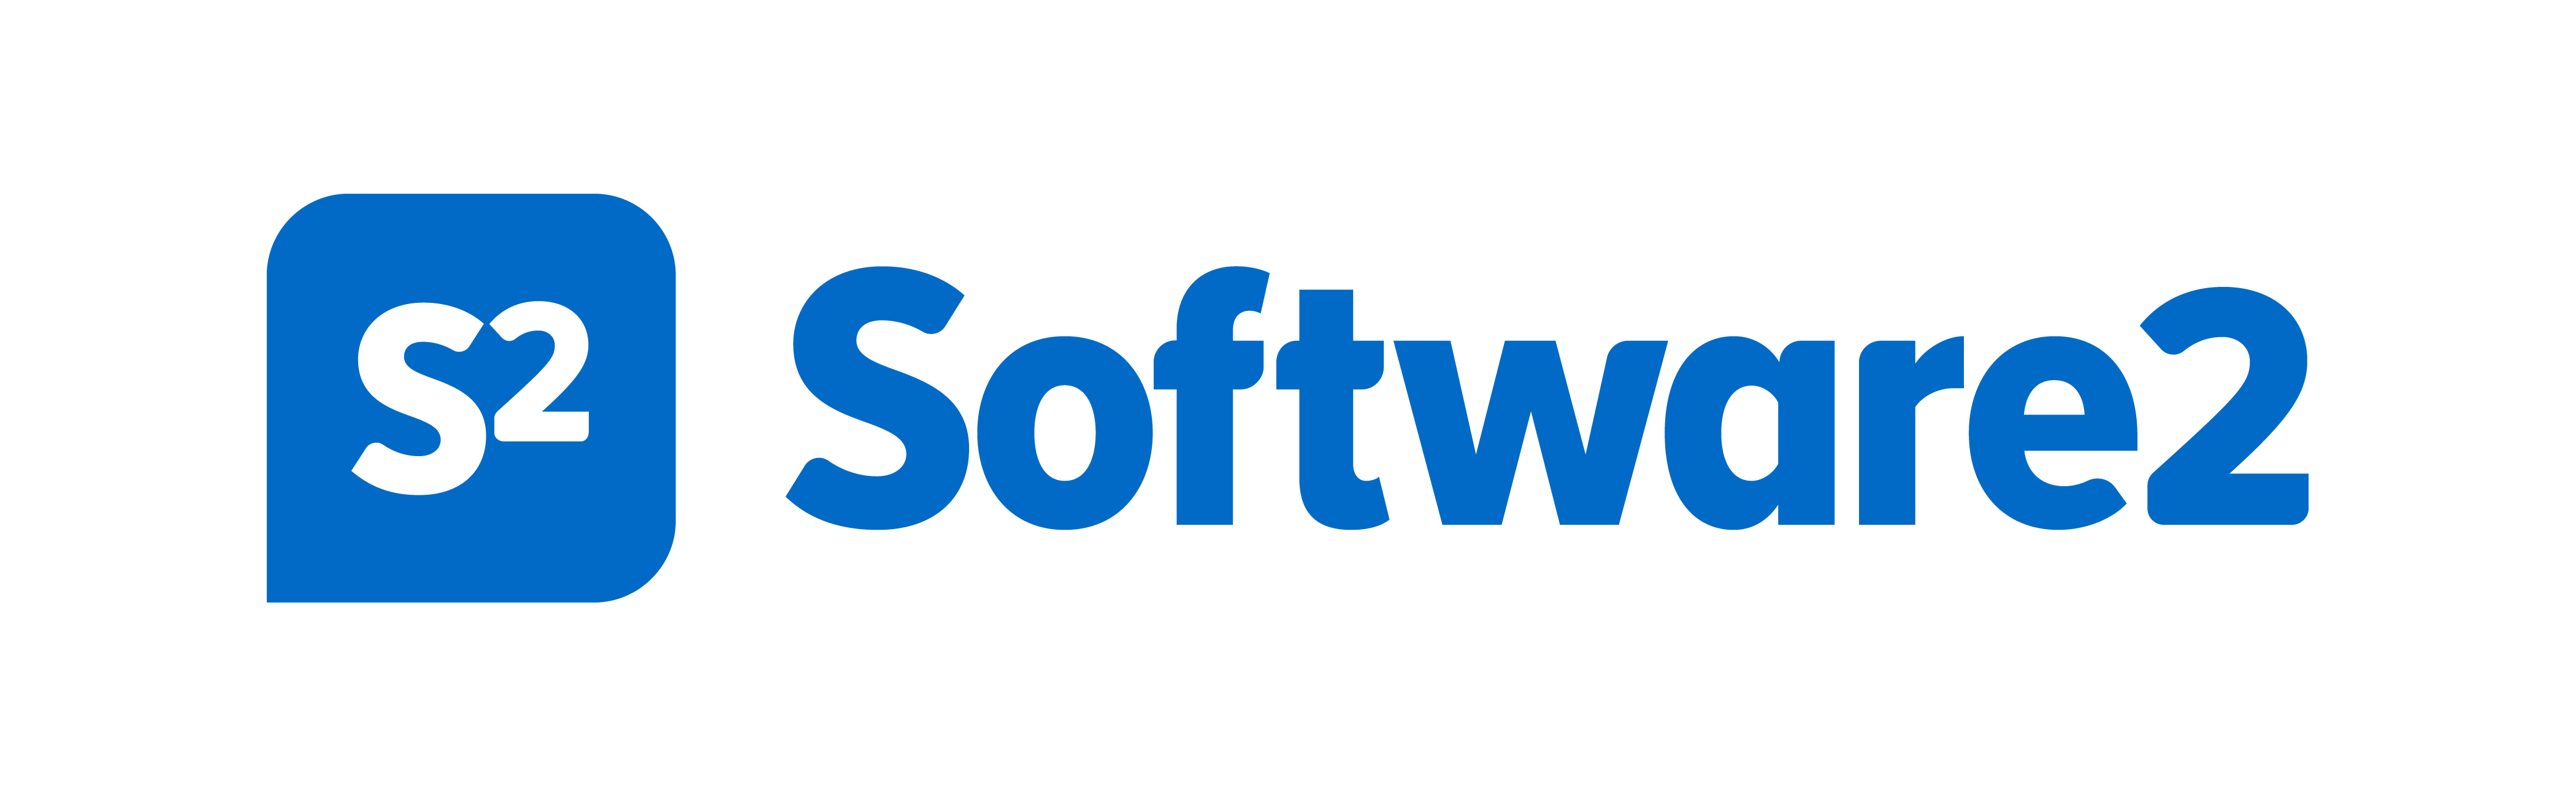 Software 2